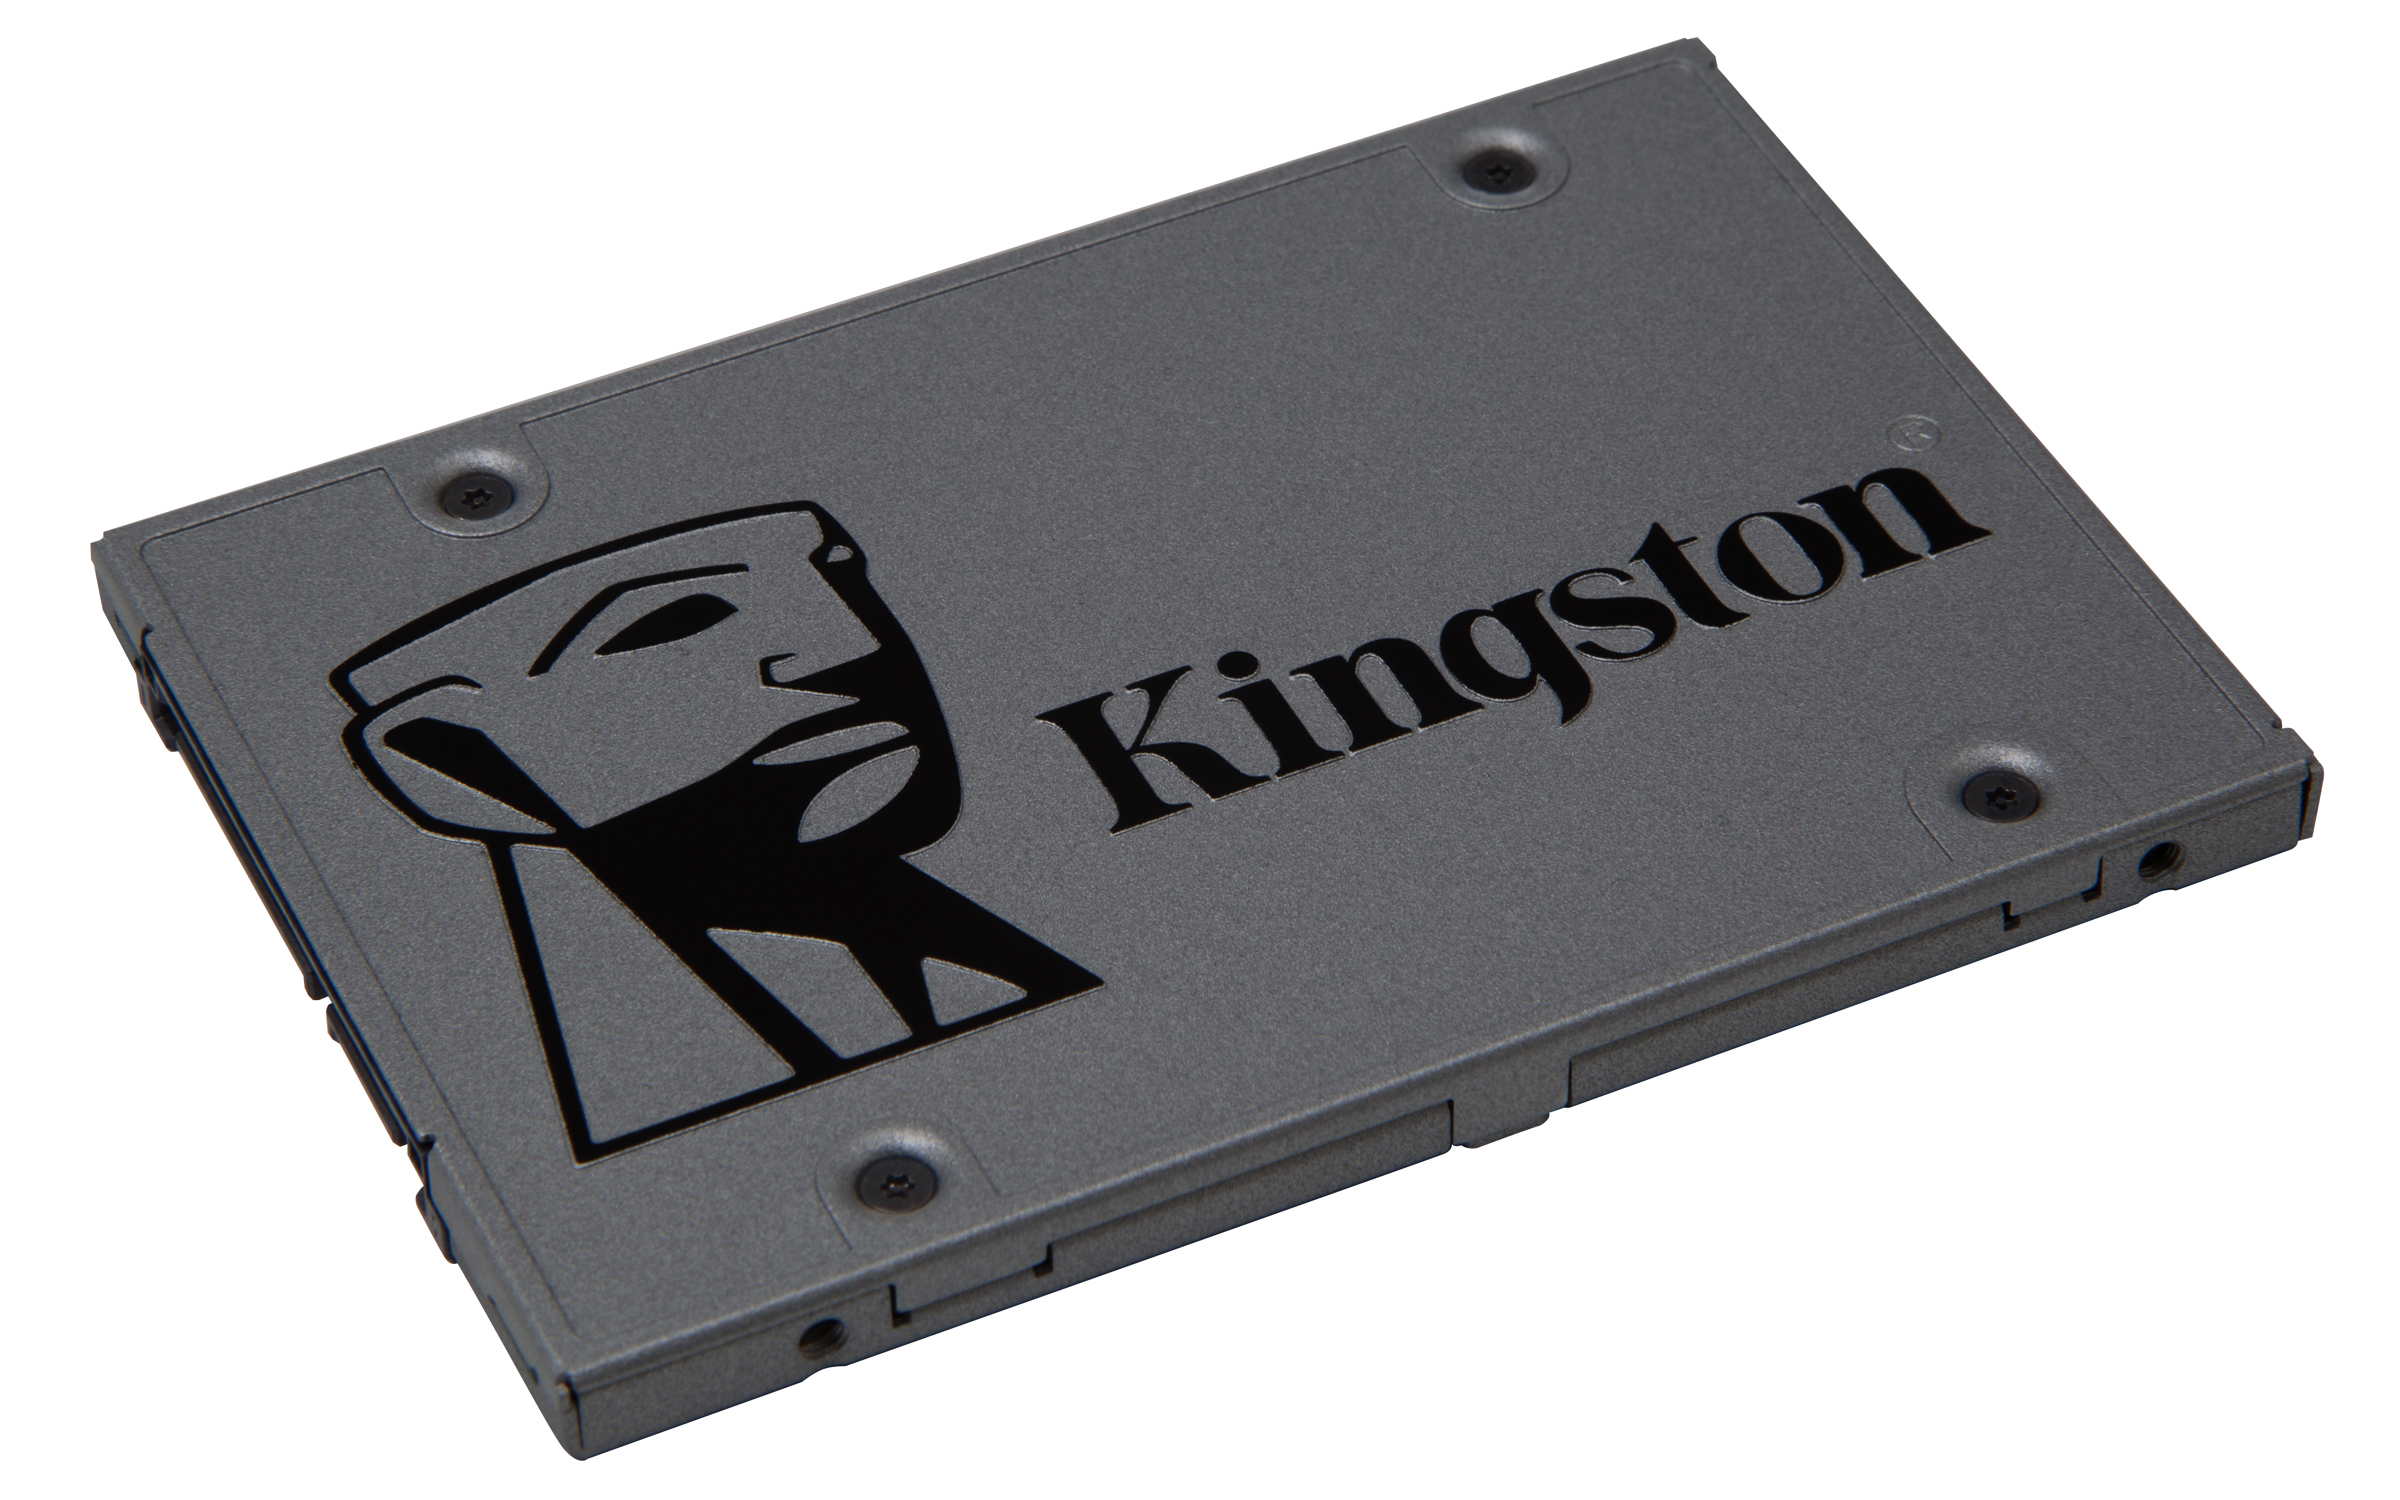 Жесткий диск SSD Kingston SUV500/120G (520/320Мб/с)